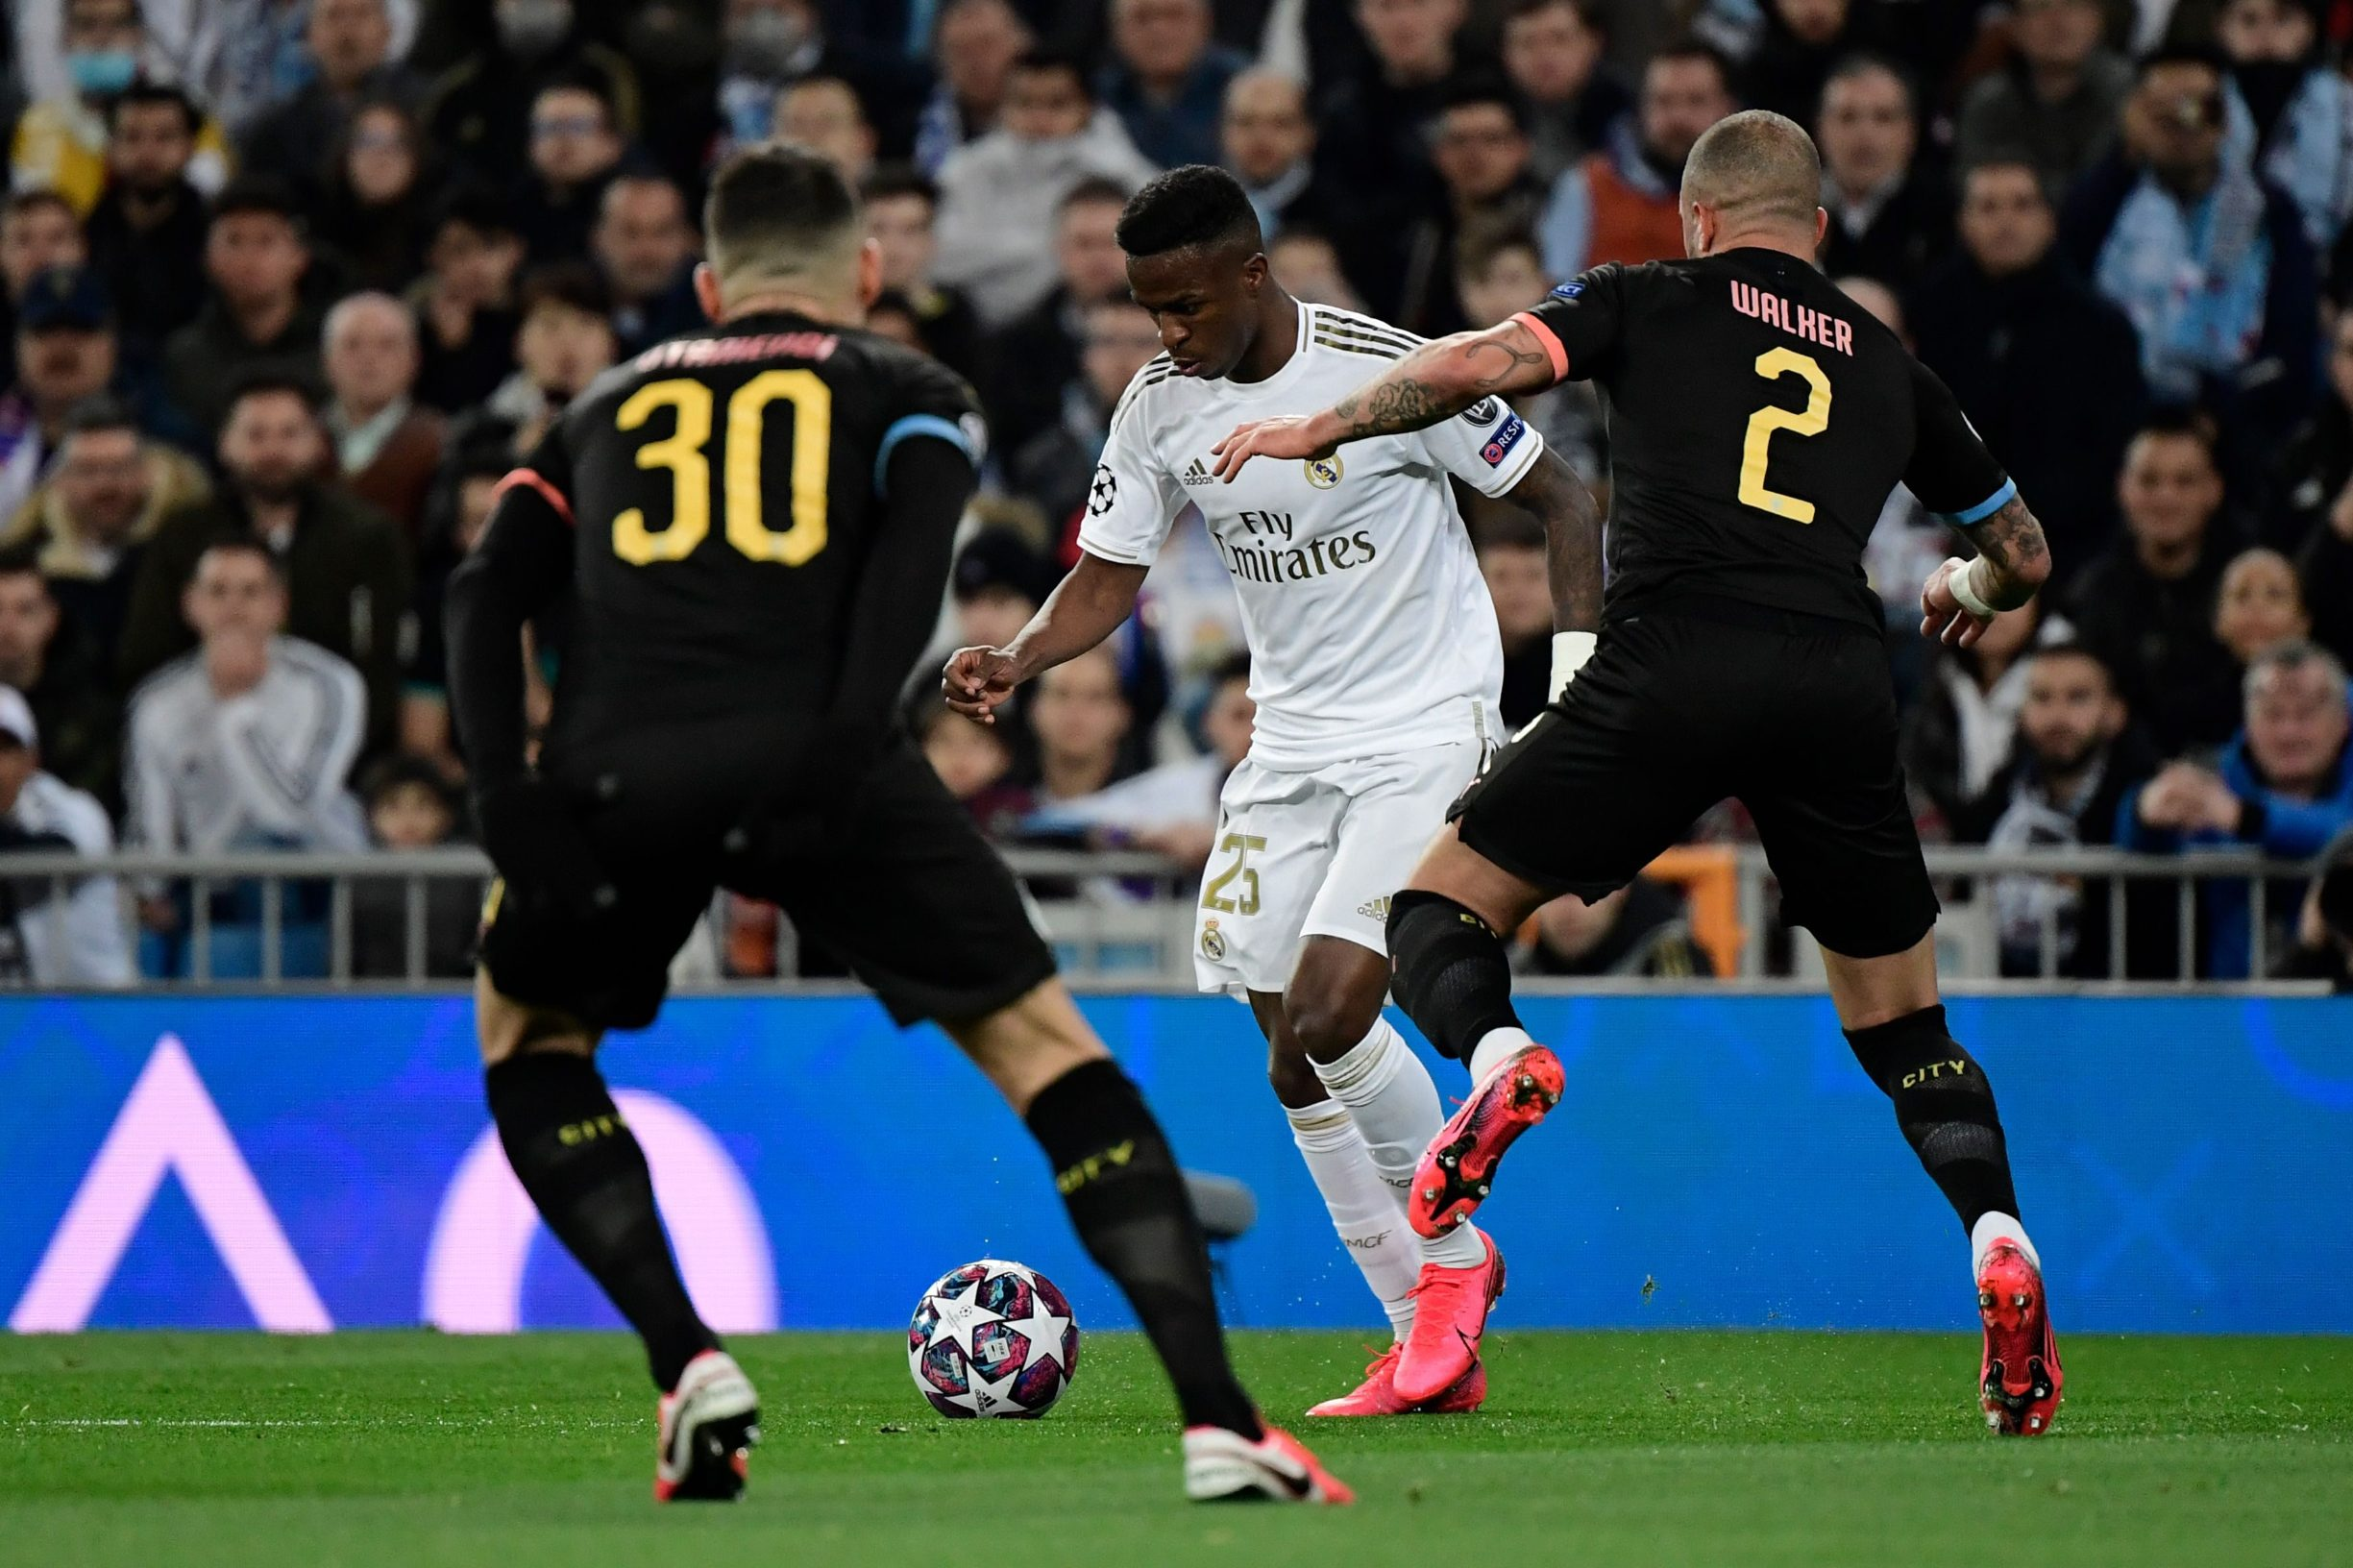 Real Madrid's Brazilian forward Vinicius Junior (C) vies with Manchester City's English defender Kyle Walker during the UEFA Champions League round of 16 first-leg football match between Real Madrid CF and Manchester City at the Santiago Bernabeu stadium in Madrid on February 26, 2020. (Photo by JAVIER SORIANO / AFP)